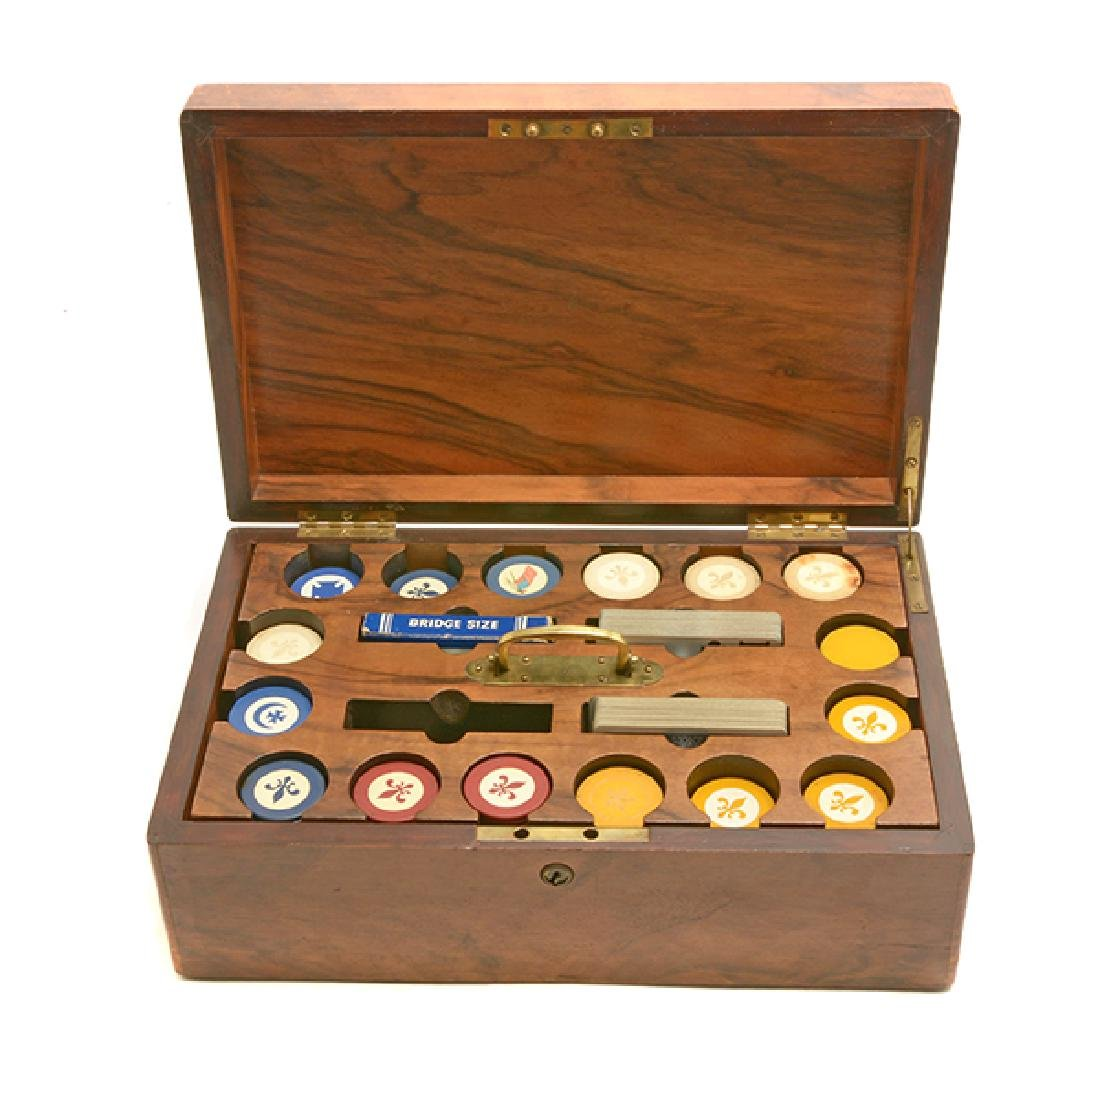 English Edwardian Poker Chip Set in Wood Case